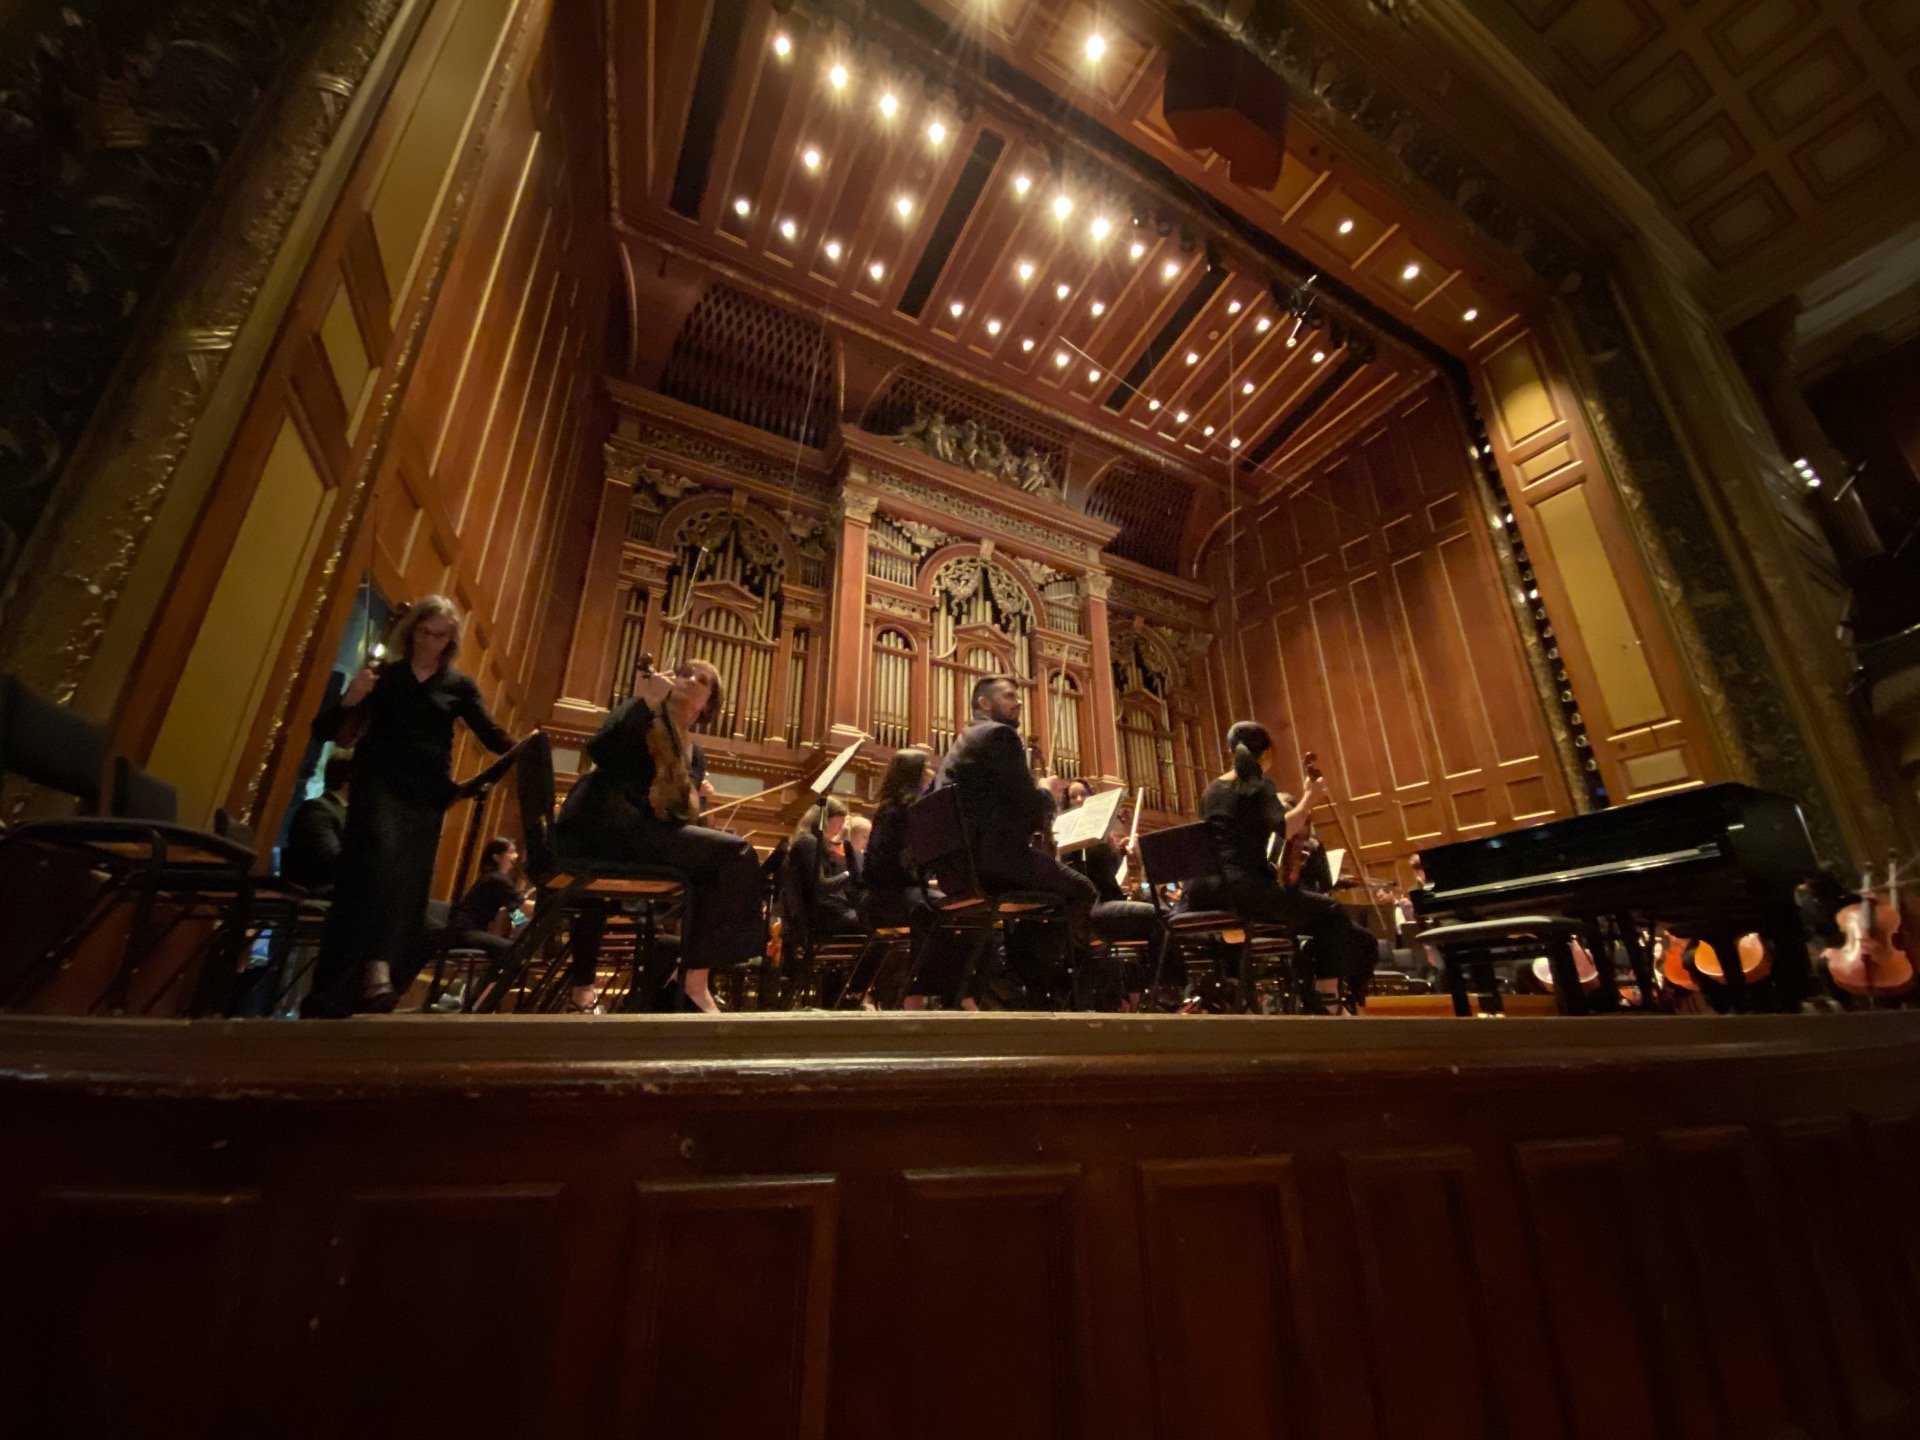 Jordan Hall at the New England Conservatory Section Orchestra Left Row A Seat 11